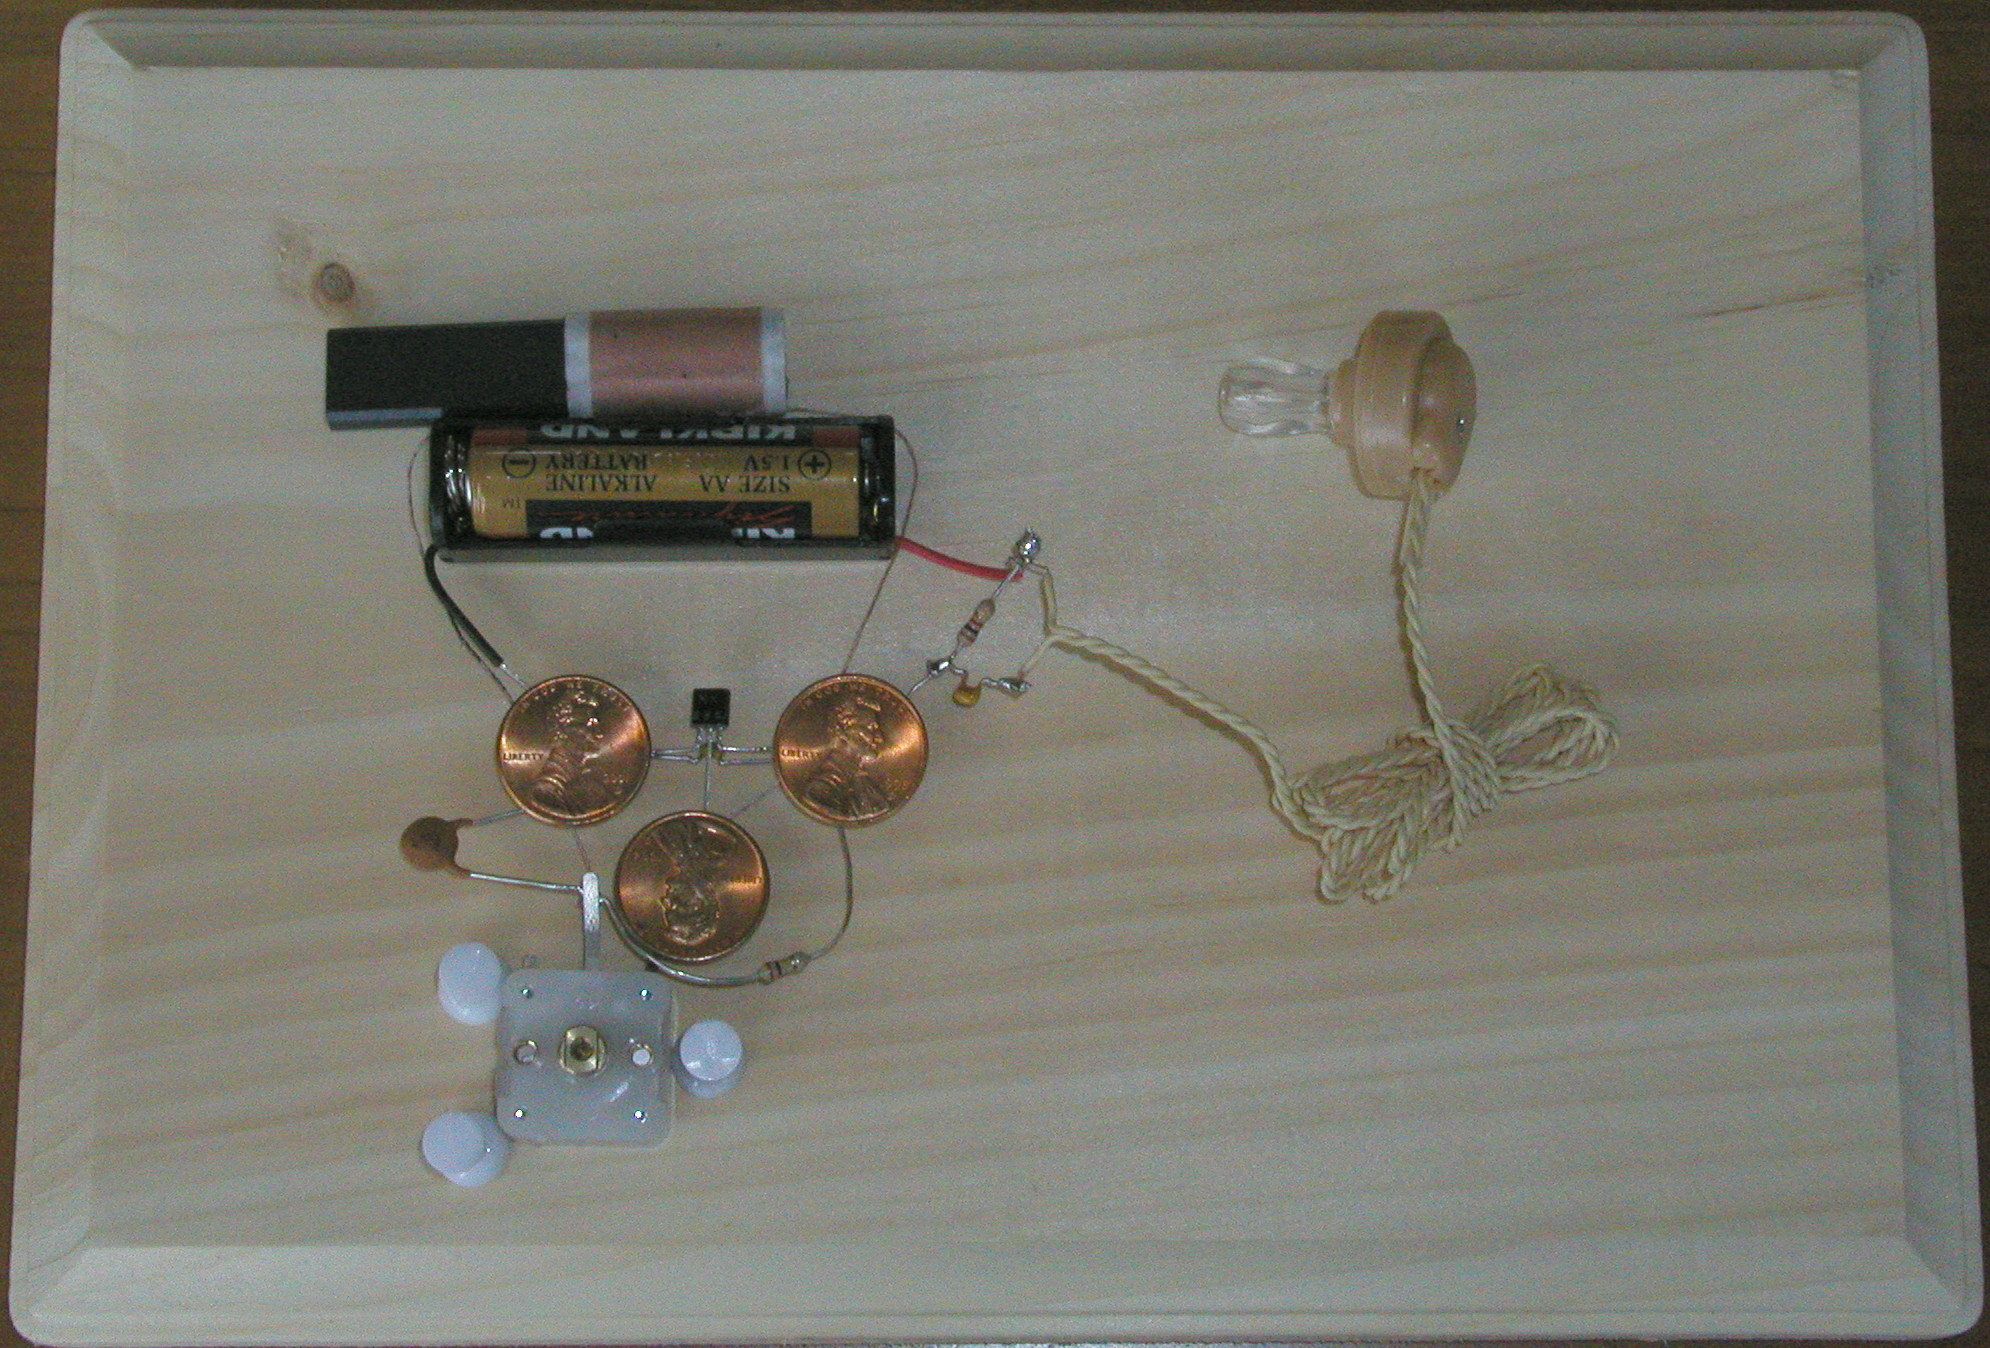 3-Penny radio.  Site even shows how you can use alternative sources for power like a home made vinegar battery.